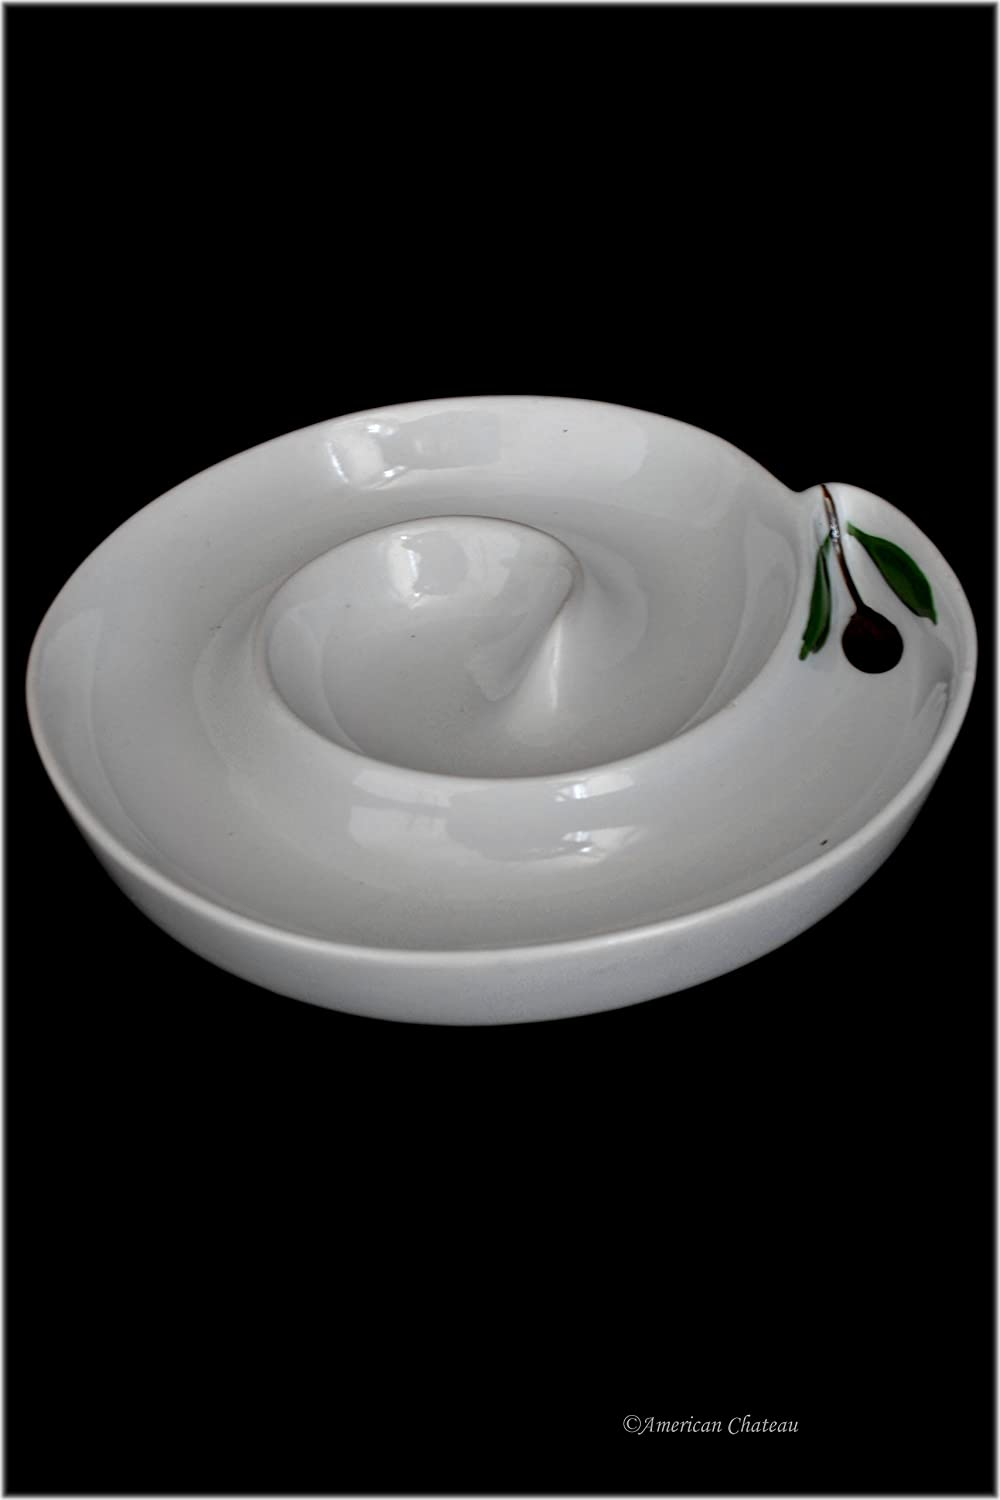 7 White Porcelain Round Olive Plate Dish Boat Dish with Olive Branch Design American Chateau